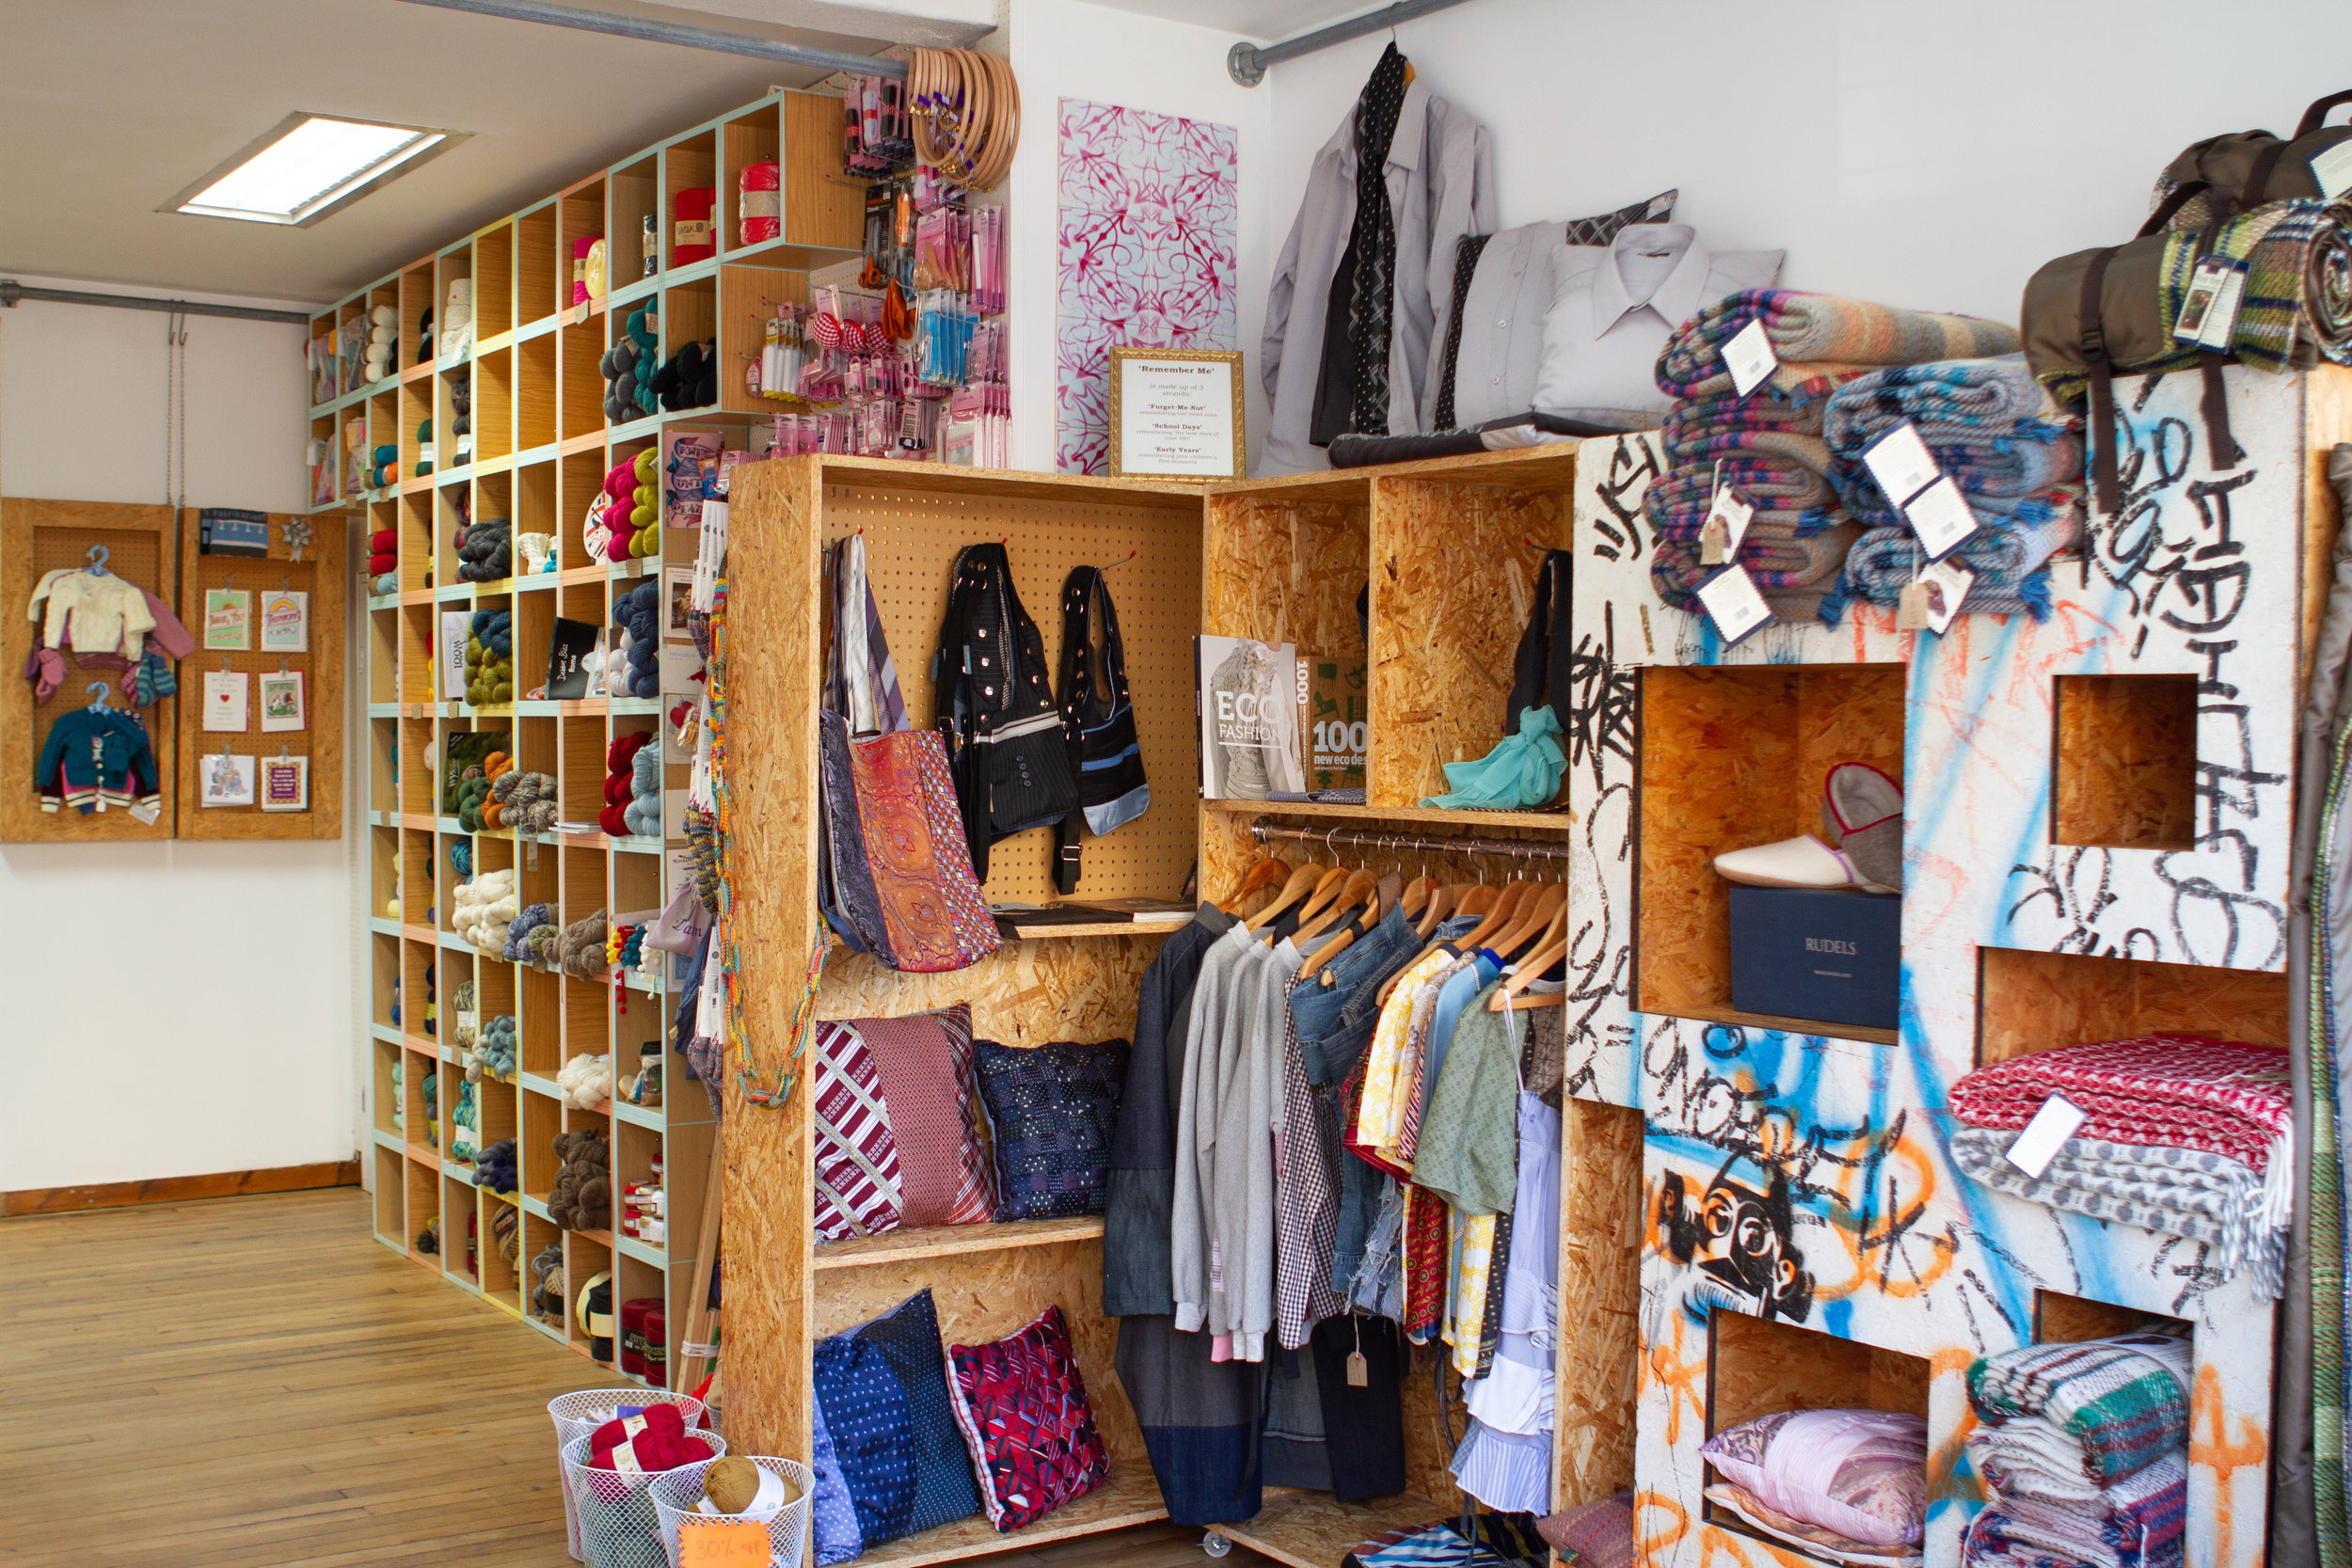 Fabrications is a creative space with lots of inspiration for making and upcycling.